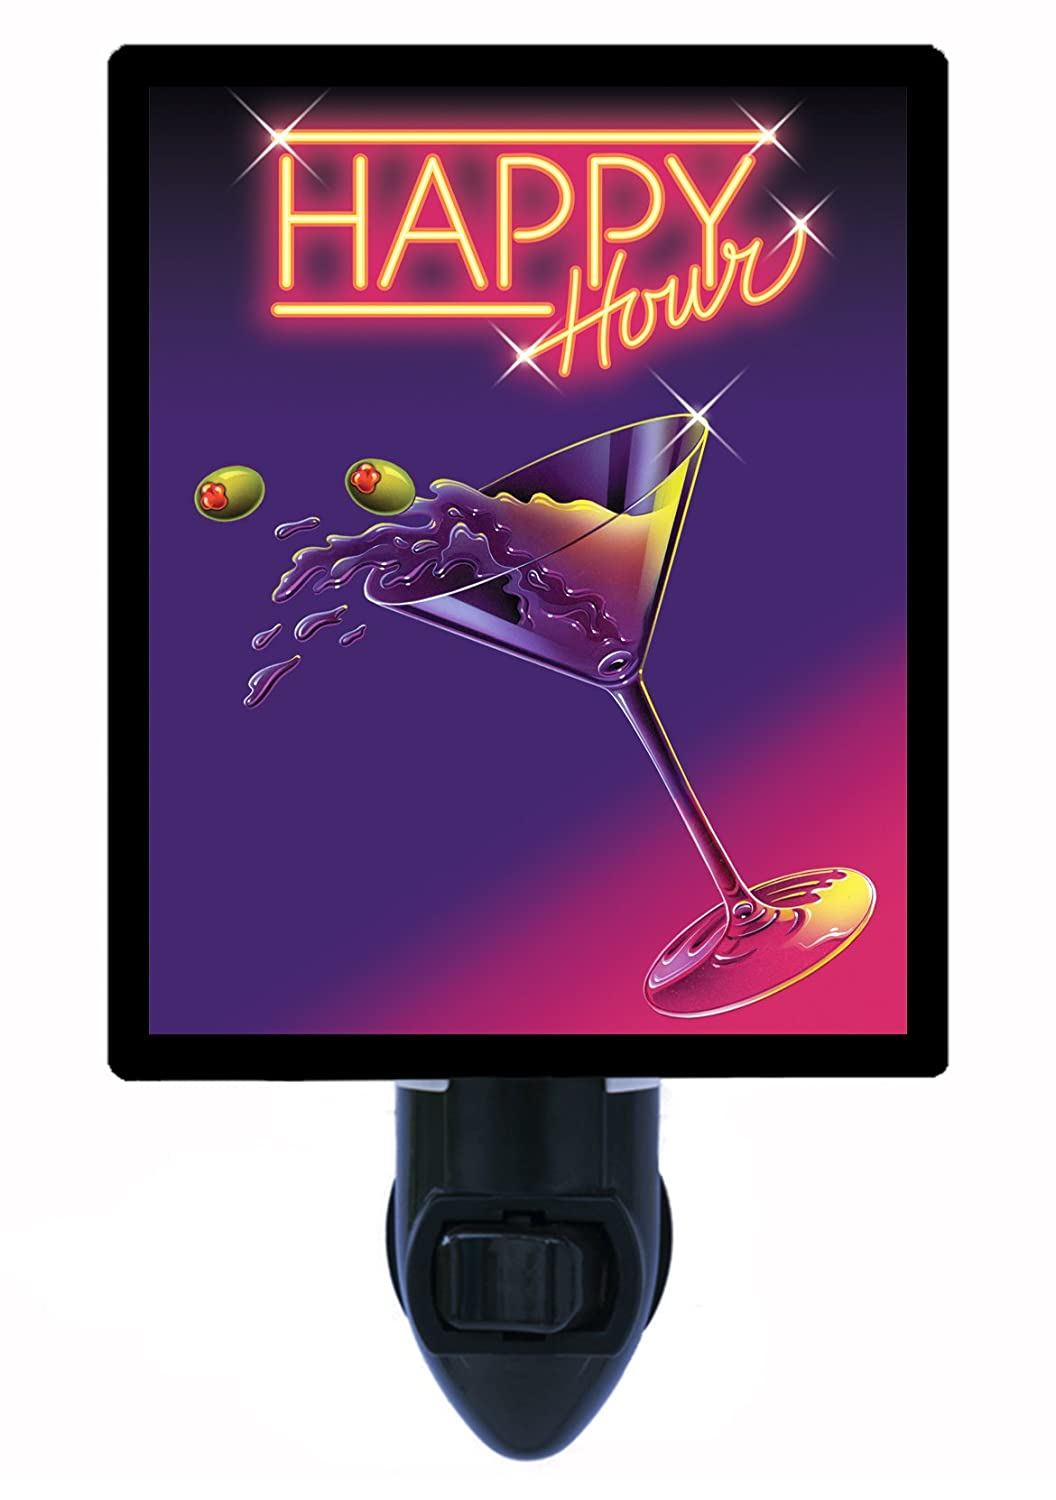 キッチンとバーNight Light – Happy Hour – Martini B005DEU4CC